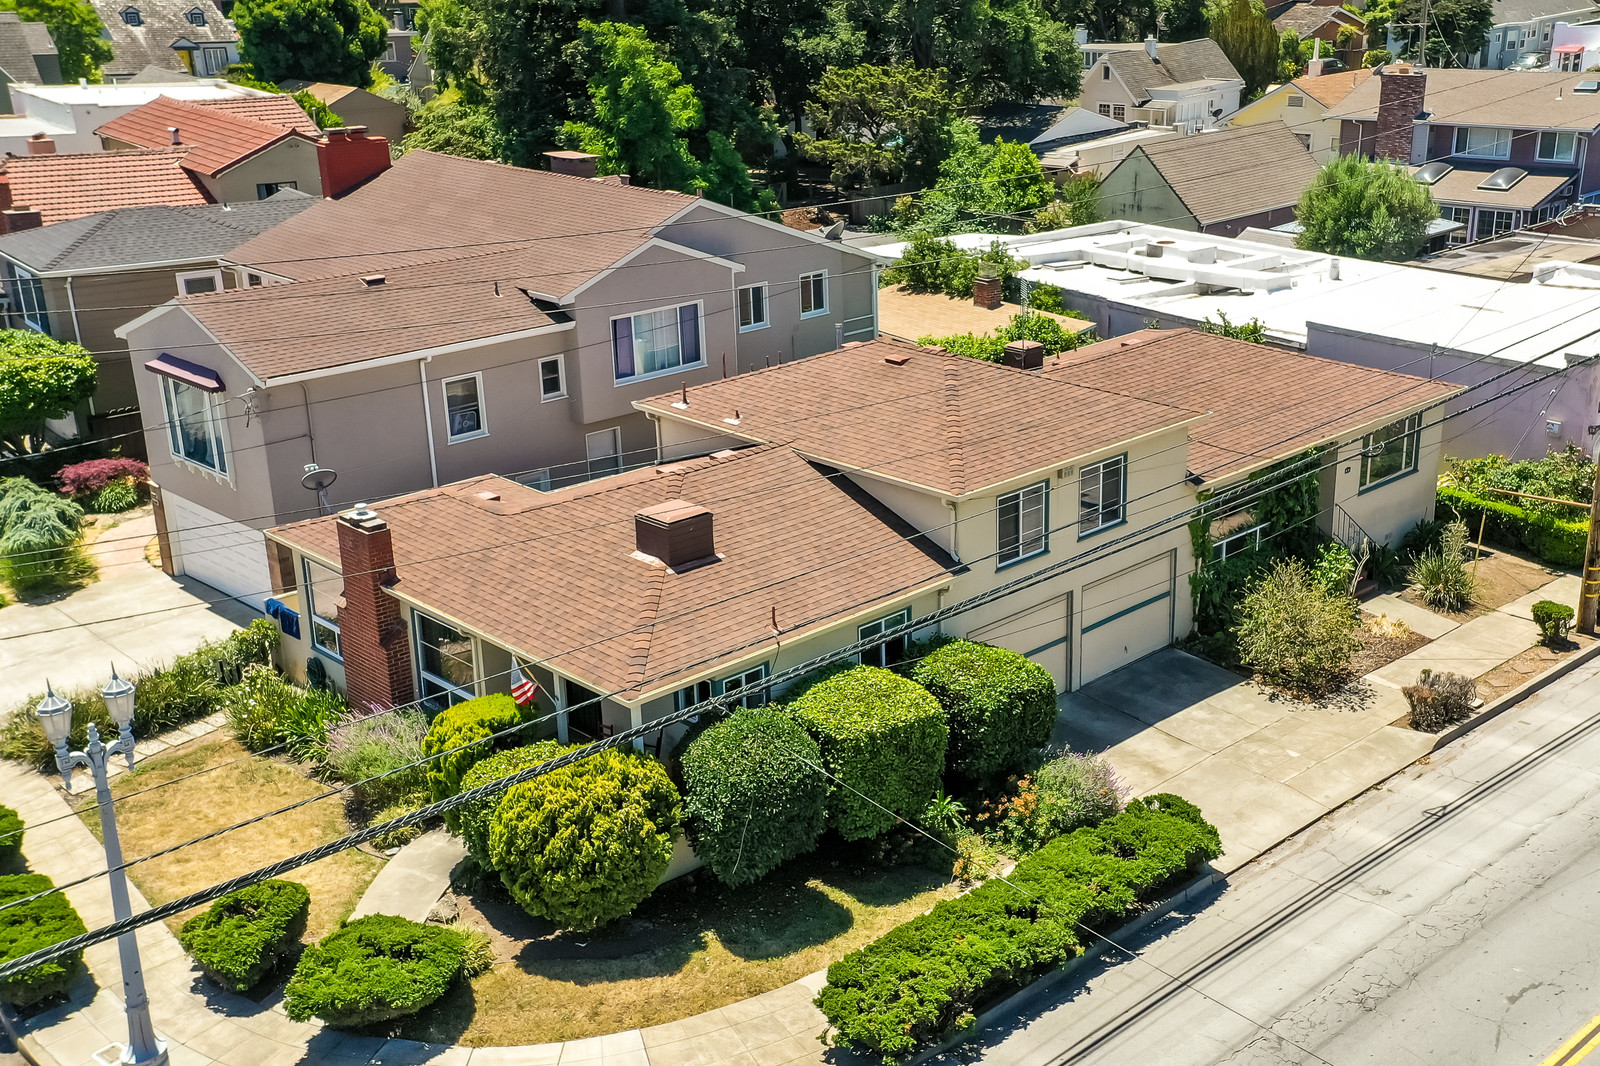 605 Lee Ave and 515 Dutton Ave Duplex, San Leandro CA